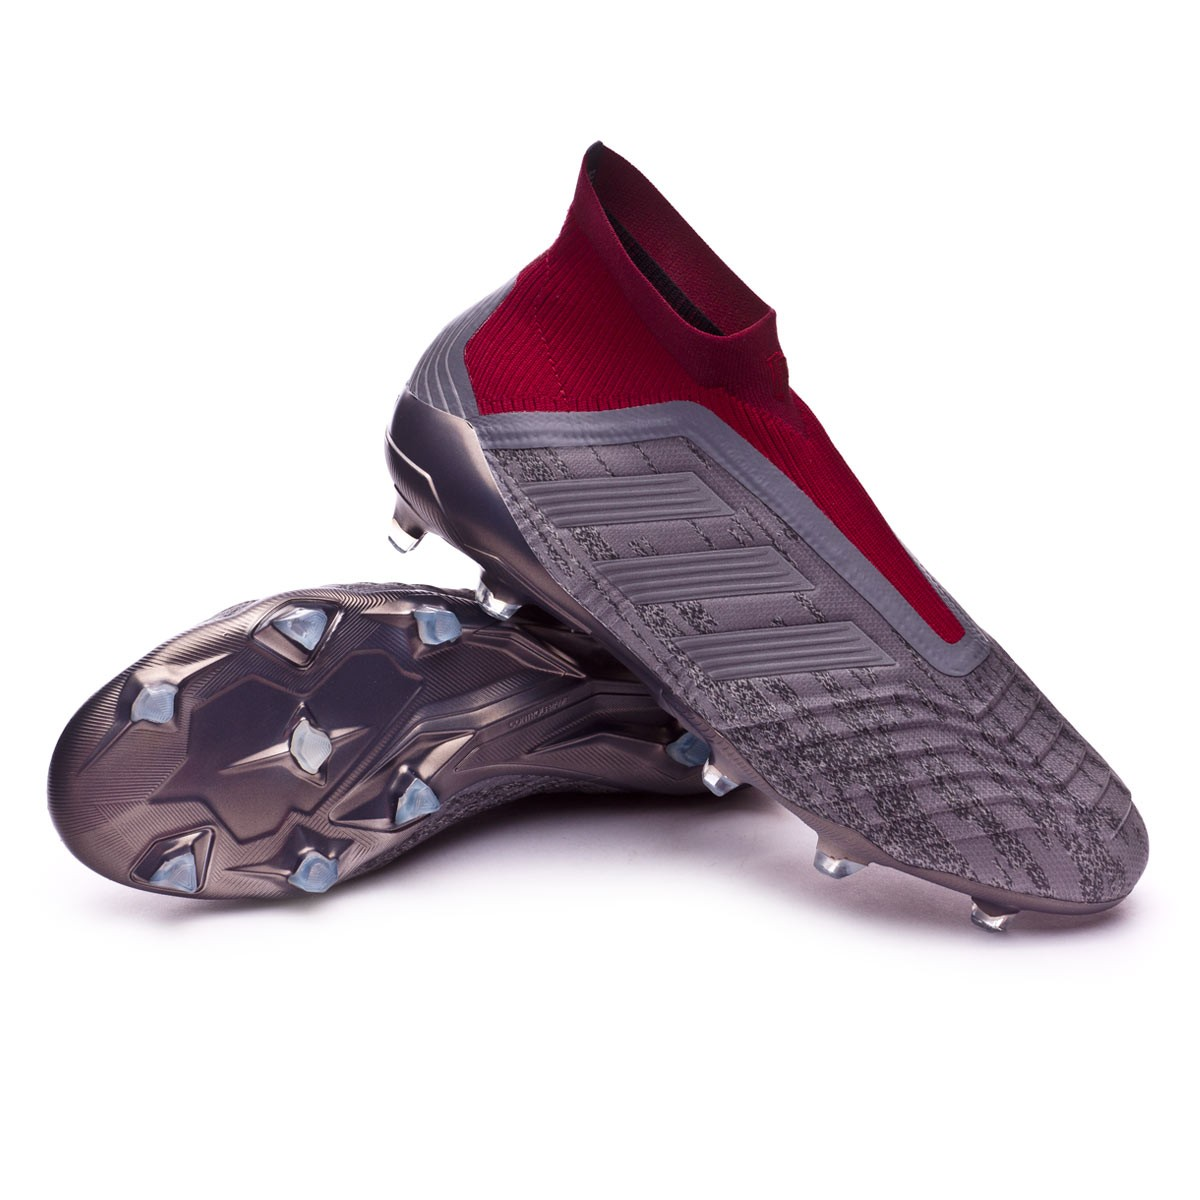 75cd70085 Football Boots adidas PP Predator 18+ FG Metallic-Burgundy - Tienda de  fútbol Fútbol Emotion